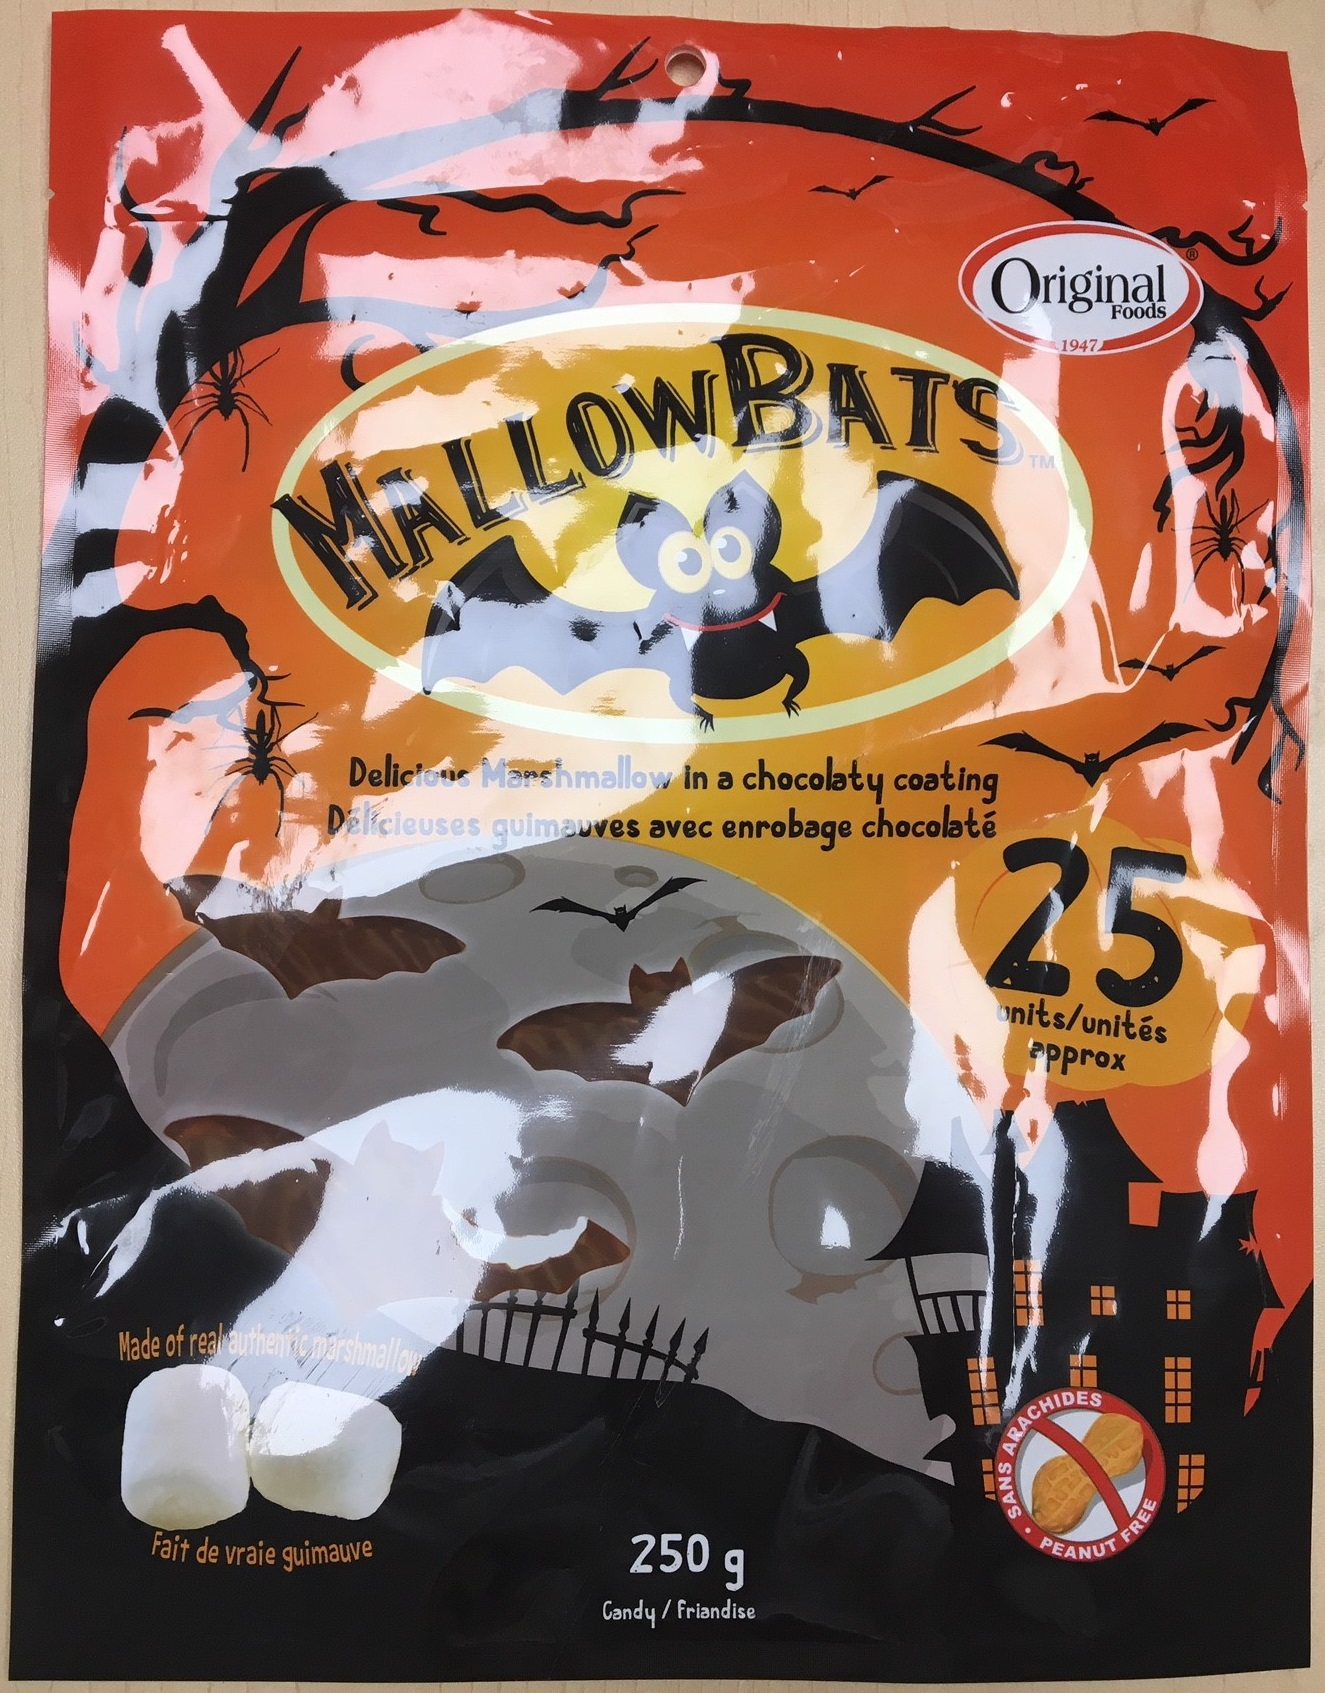 Original Food MallowBats, 250grams